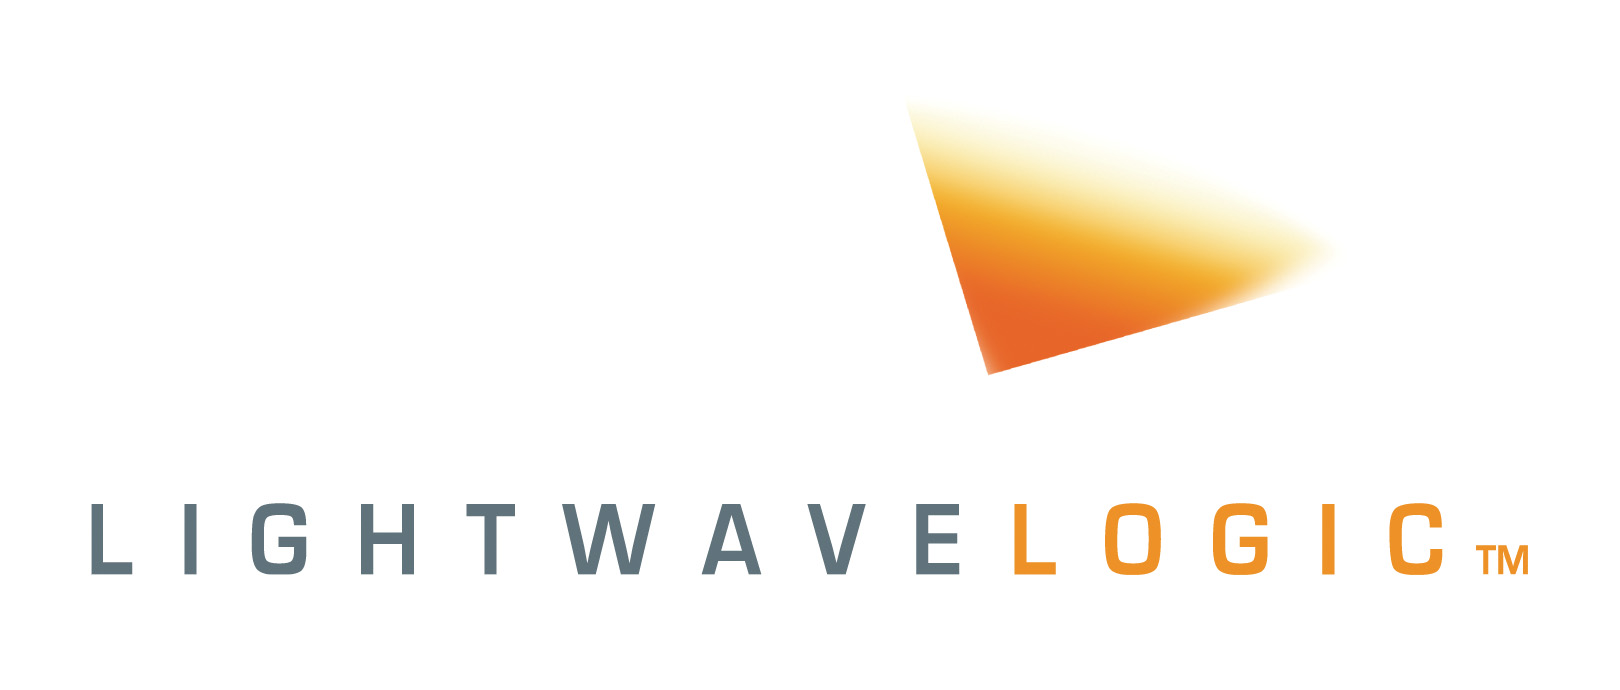 Lightwave Logic, Inc.